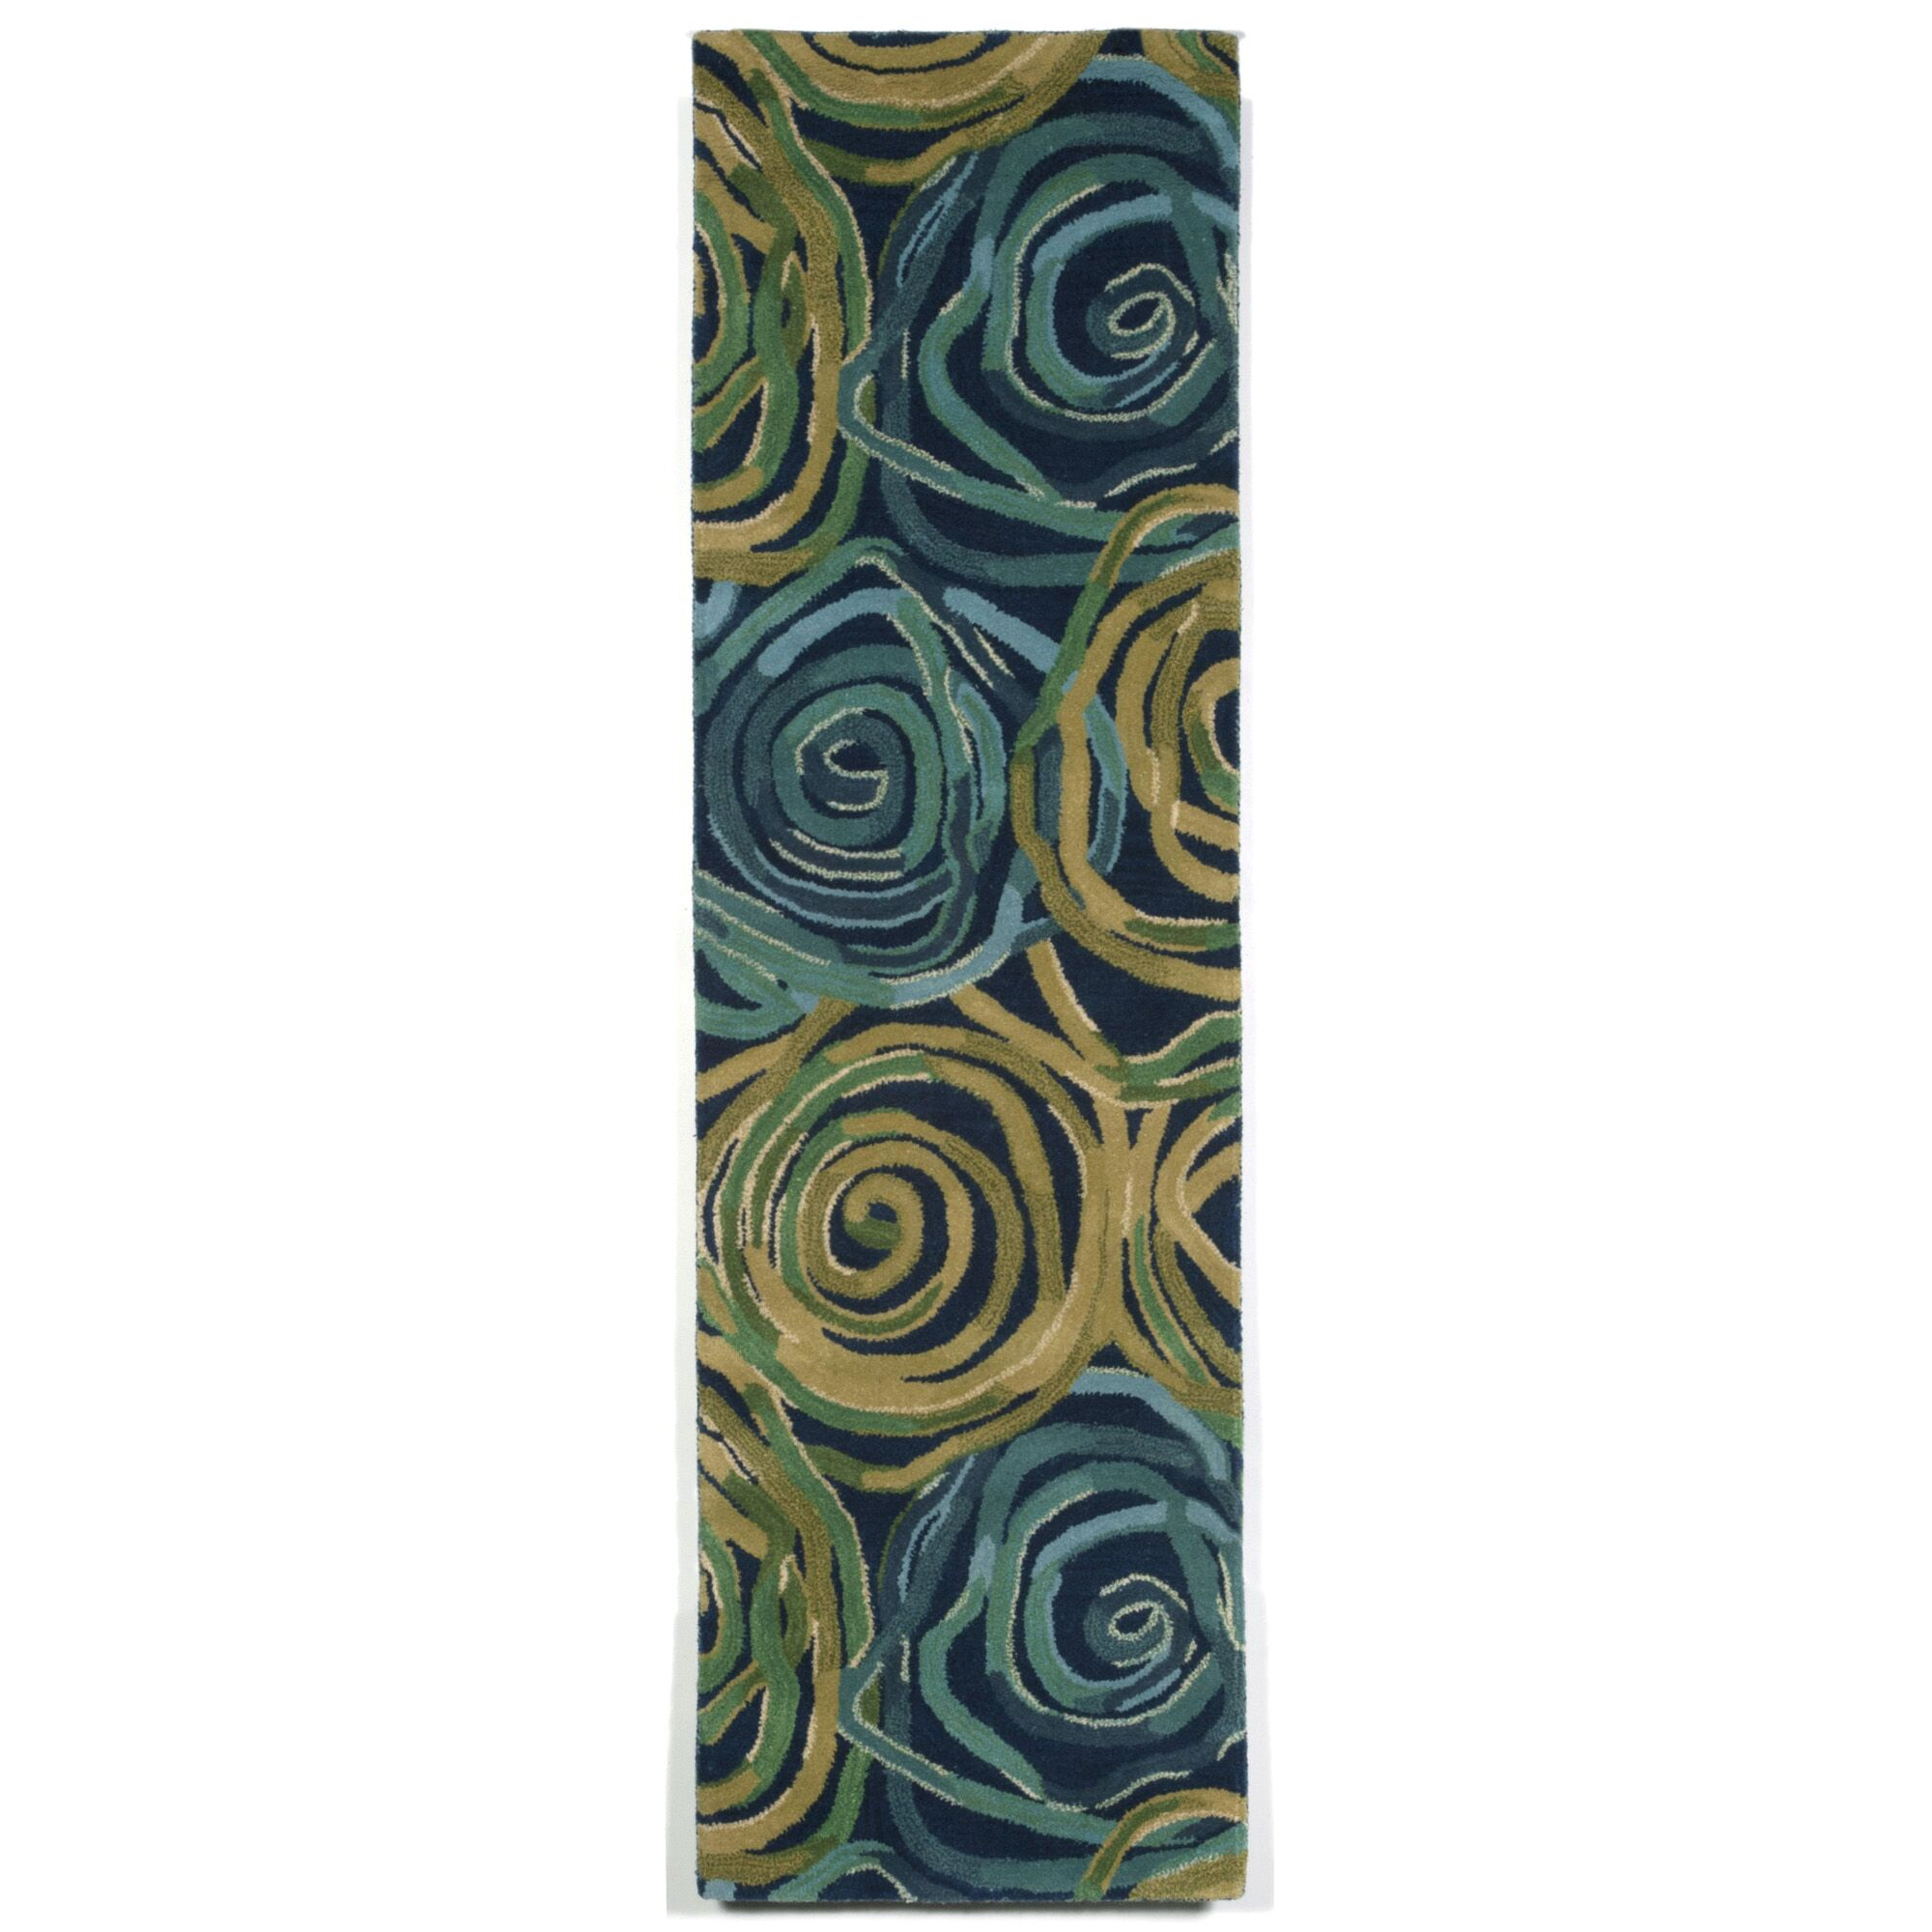 Terrill Rose Navy/Yellow Area Rug Rug Size: Runner 2'3